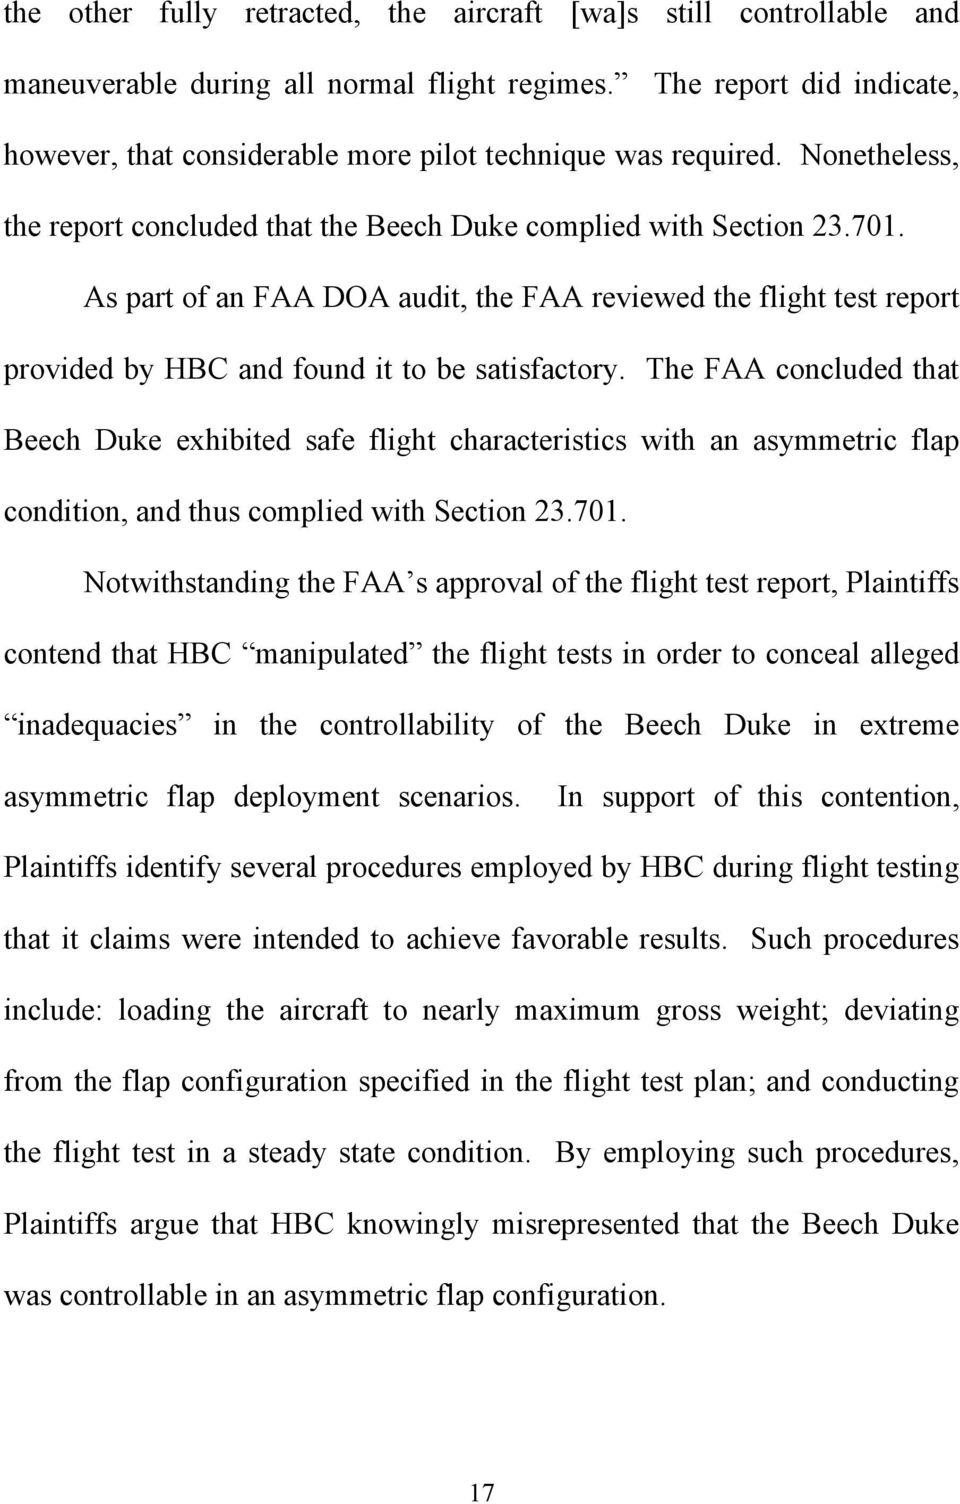 As part of an FAA DOA audit, the FAA reviewed the flight test report provided by HBC and found it to be satisfactory.